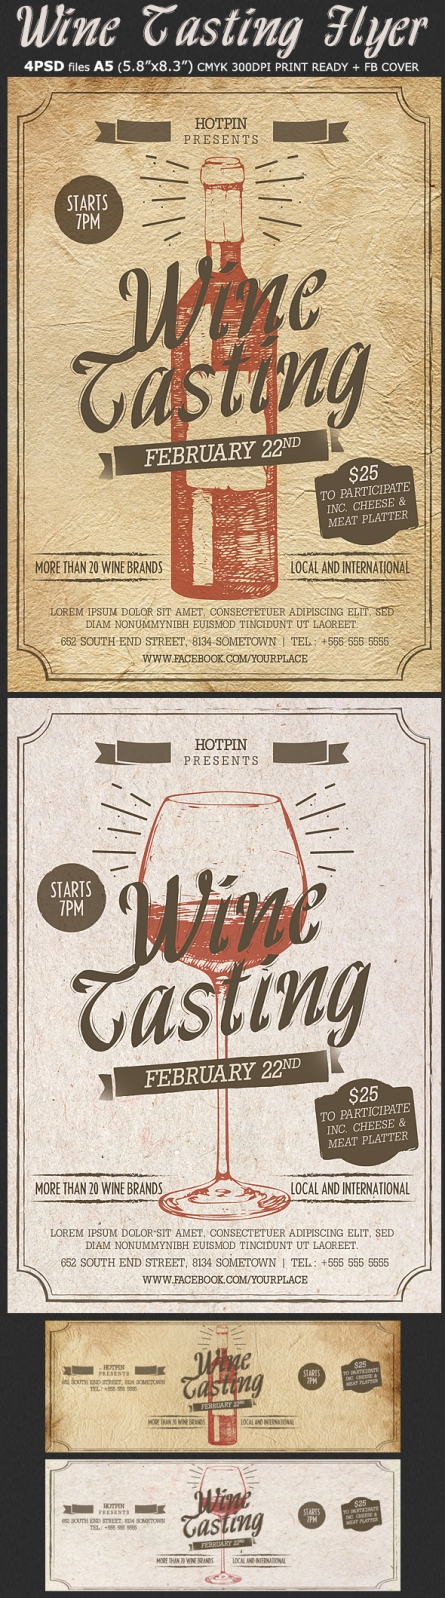 wine-tasting-flyer-template-preview